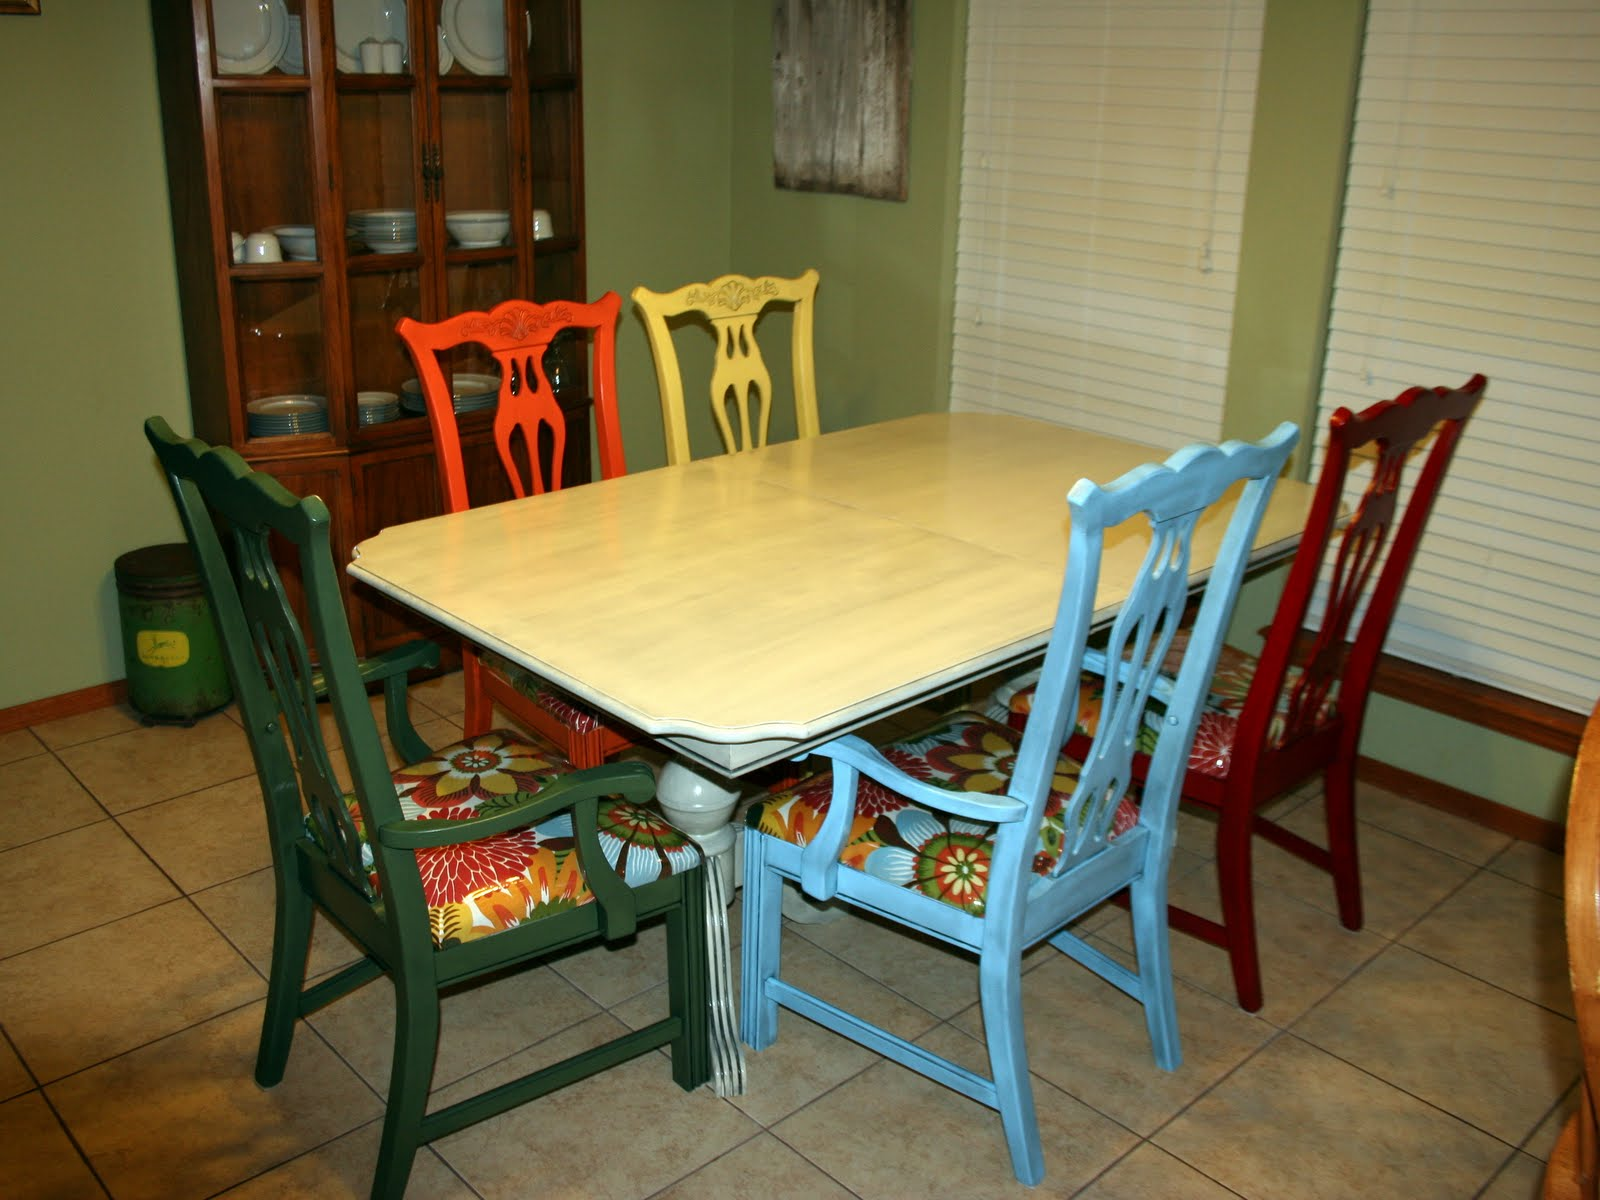 Mismatched Dining Chairs High Chair Suction Toy Stencil Wall By Alison And A Room Table Redo Jen